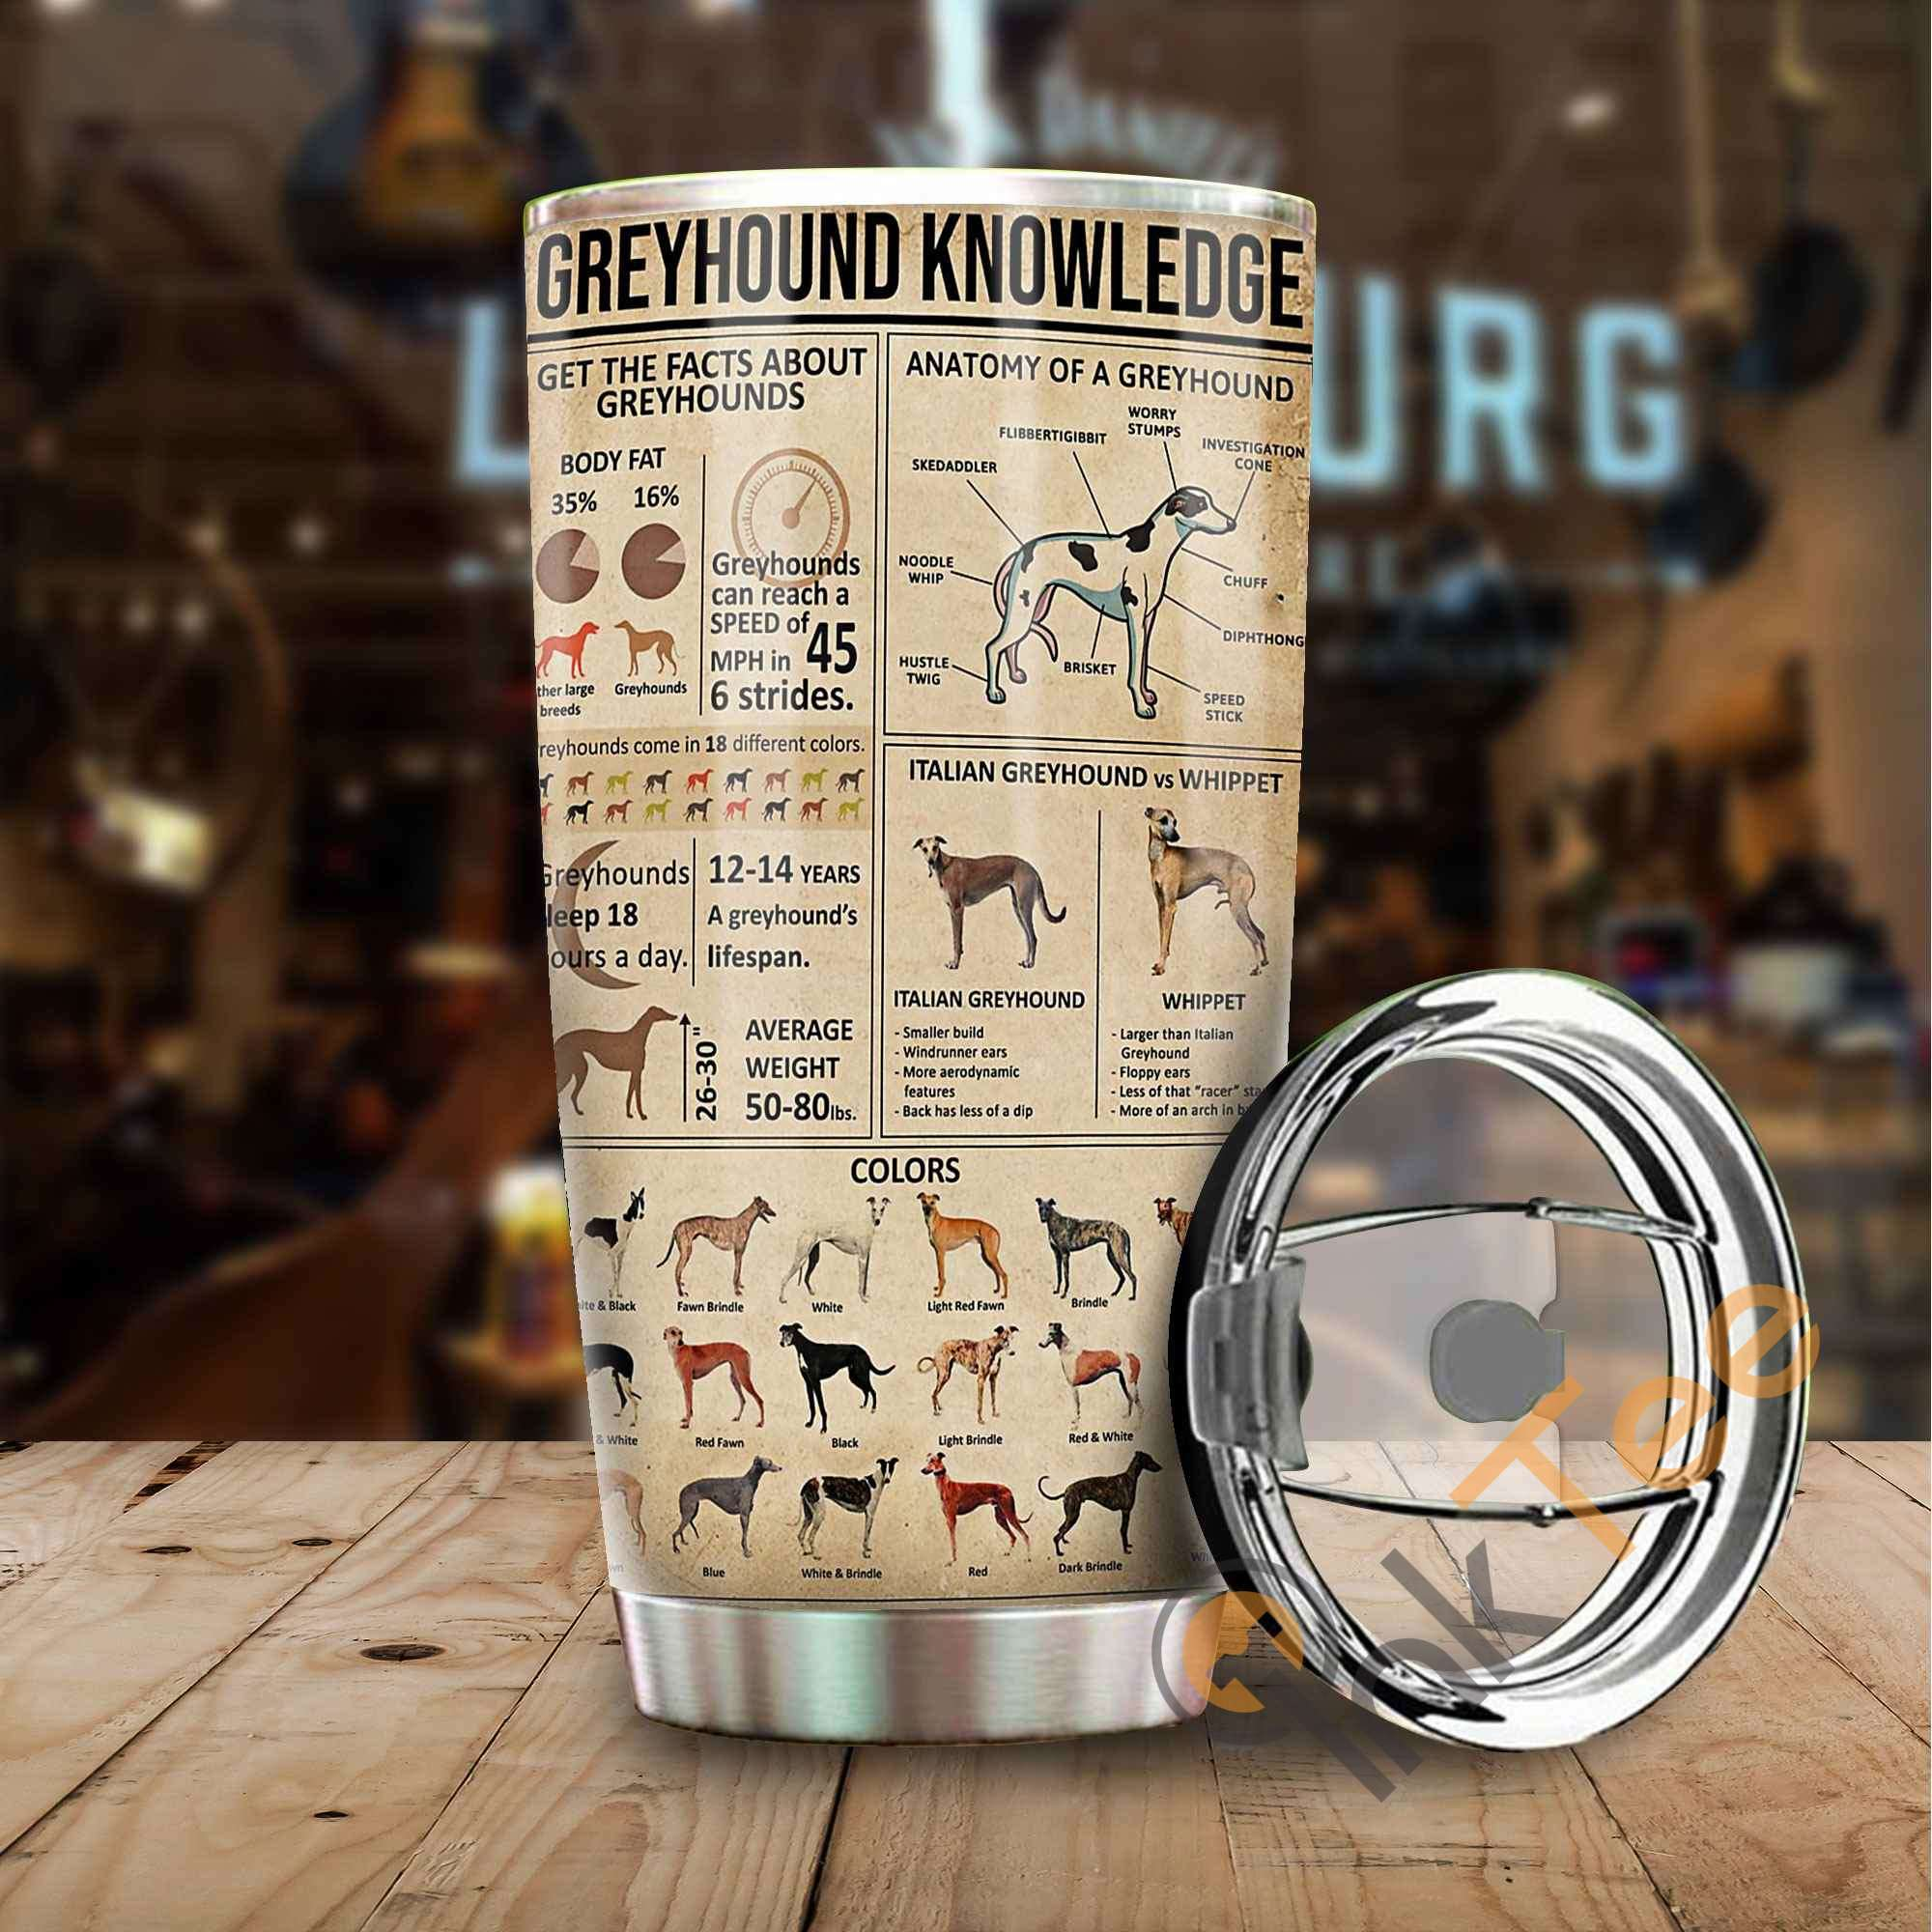 Greyhound Knowledge Amazon Best Seller Sku 3755 Stainless Steel Tumbler